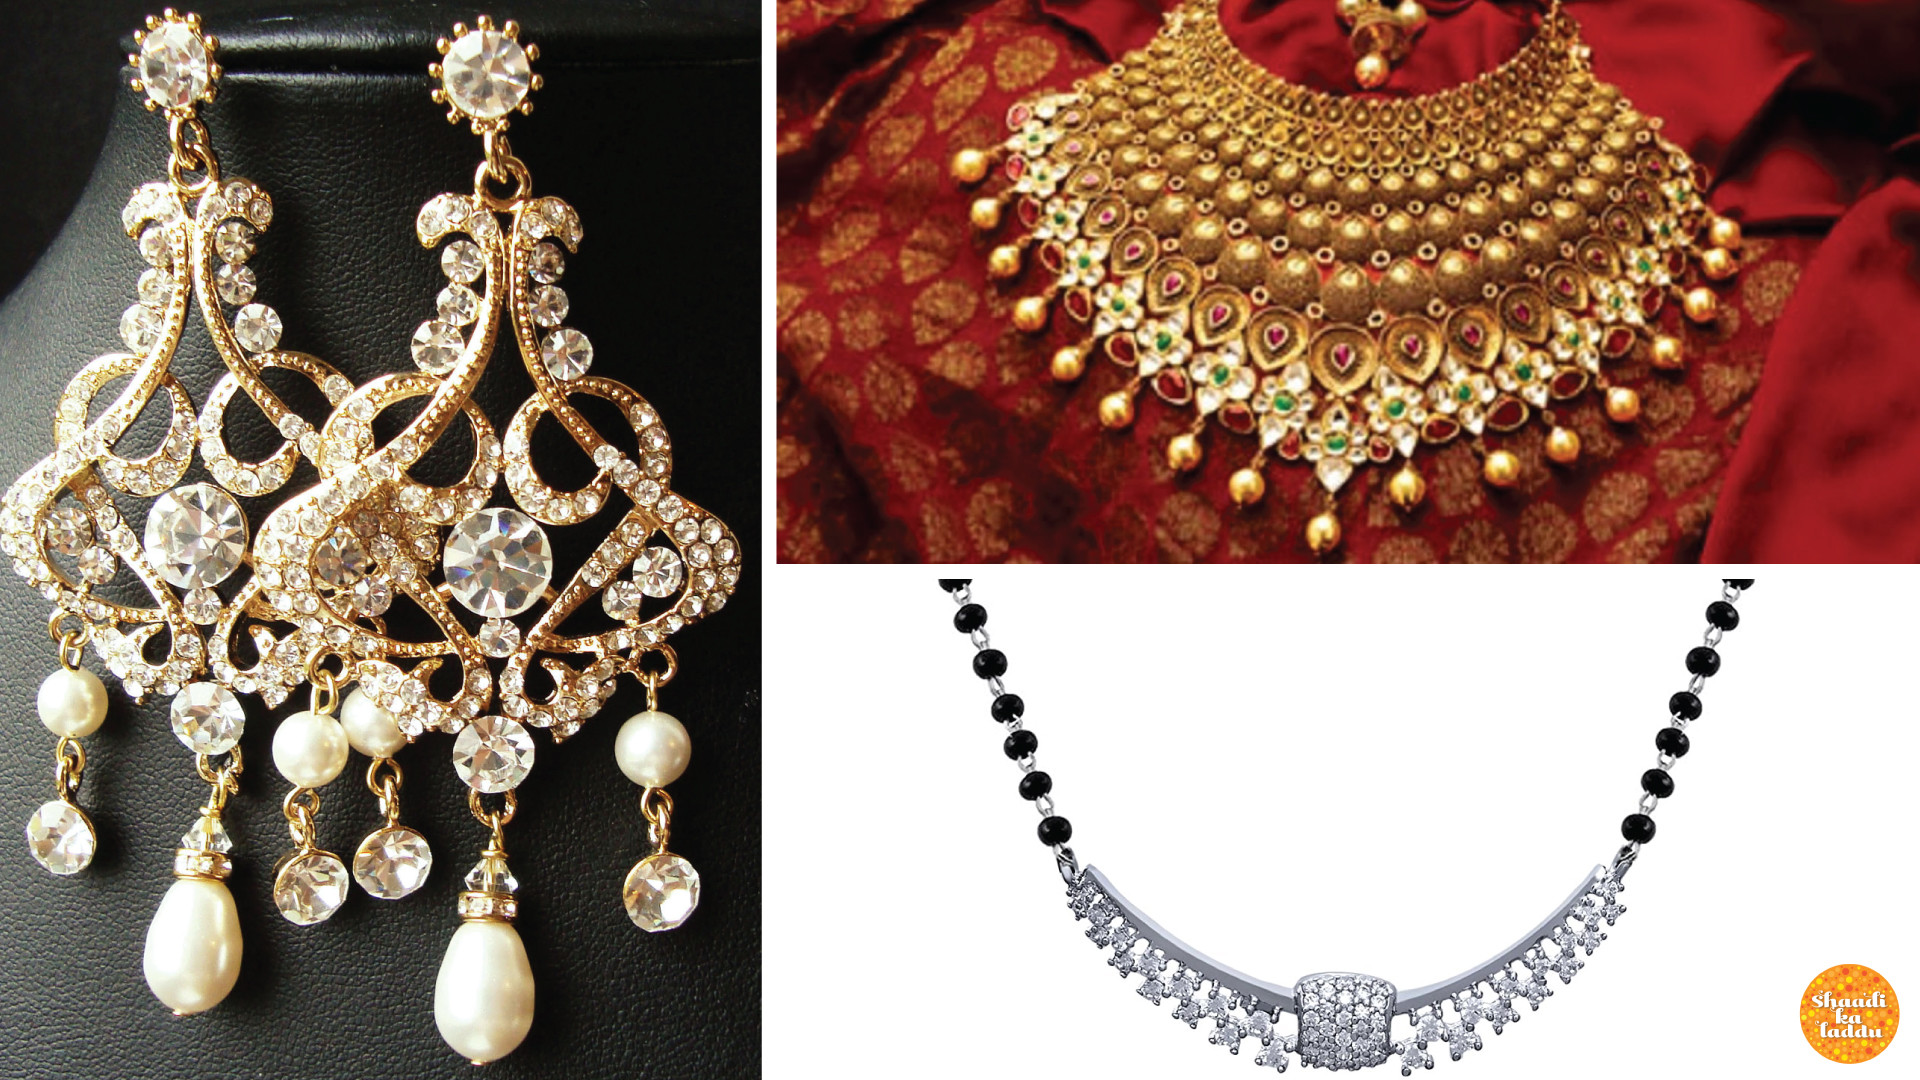 Malabar Jewelers Gold and Diamond jewellery collections